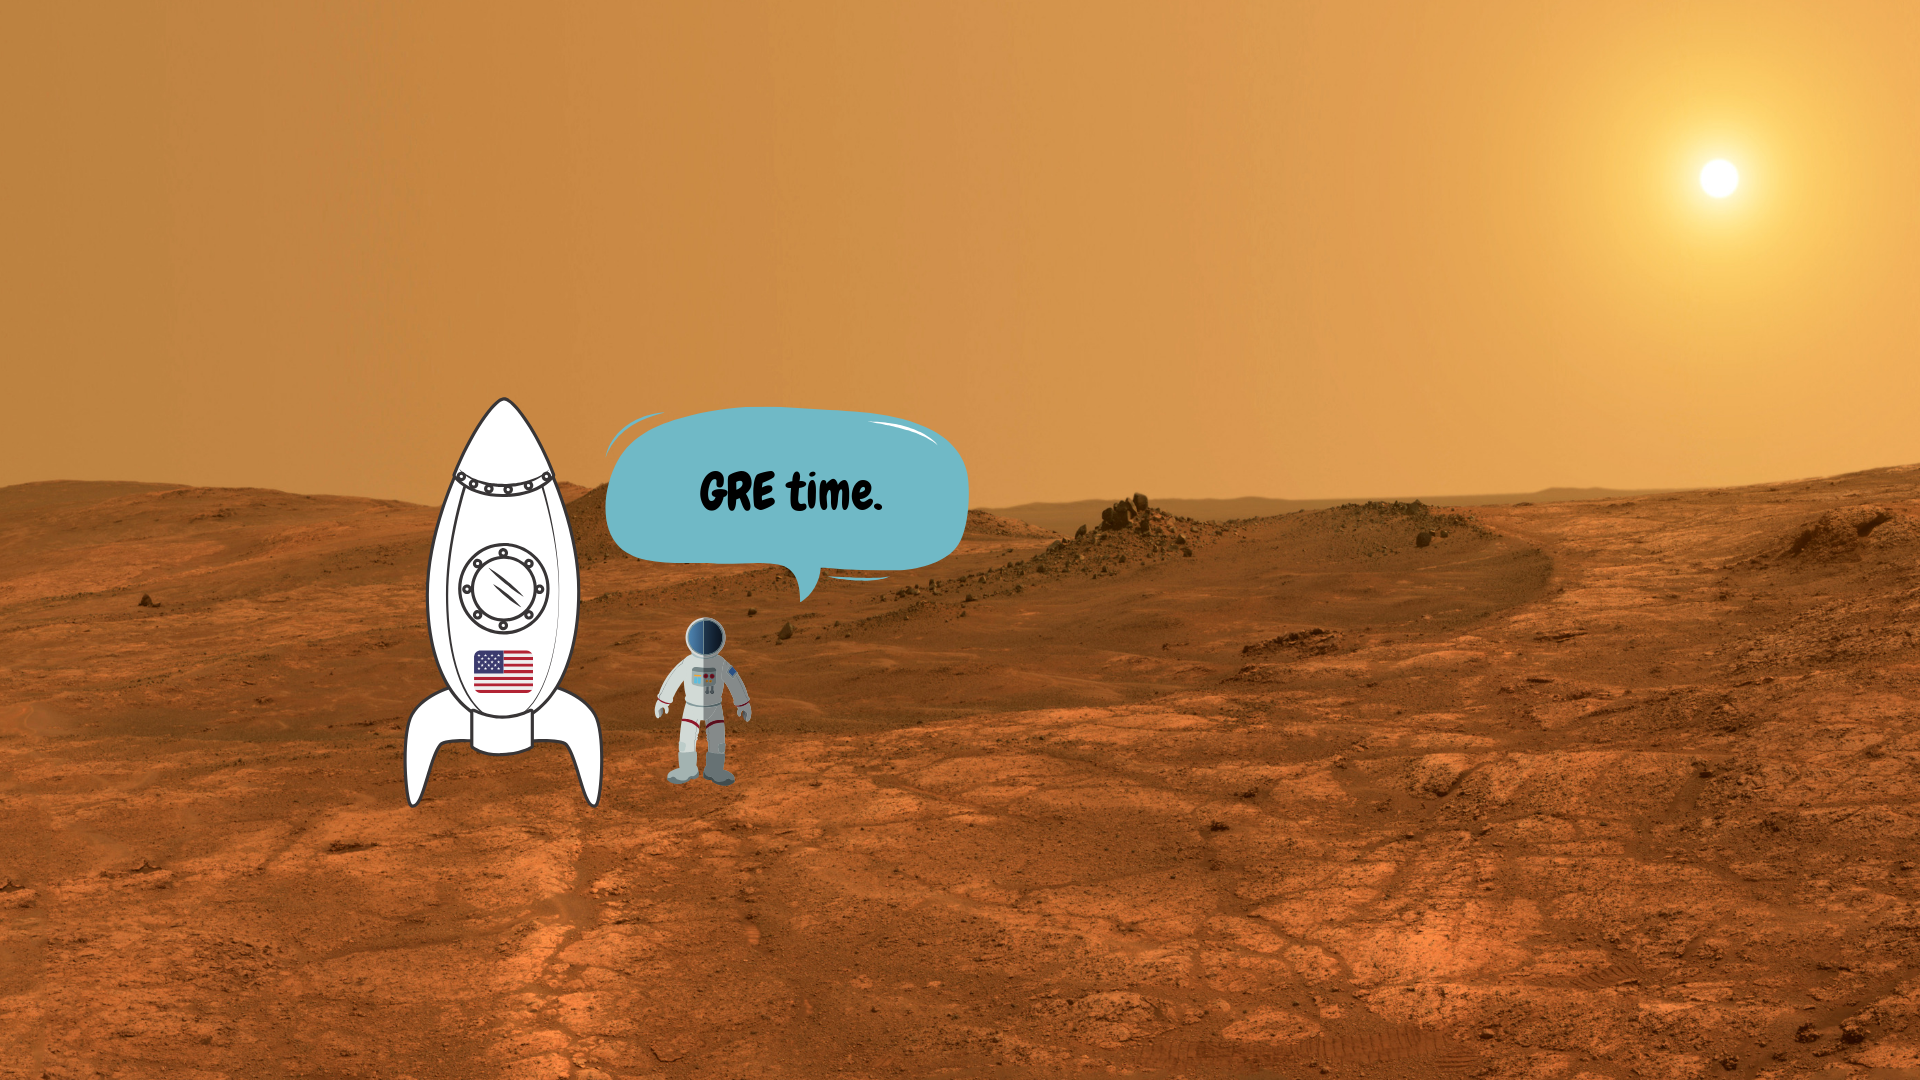 The CEO on Mars